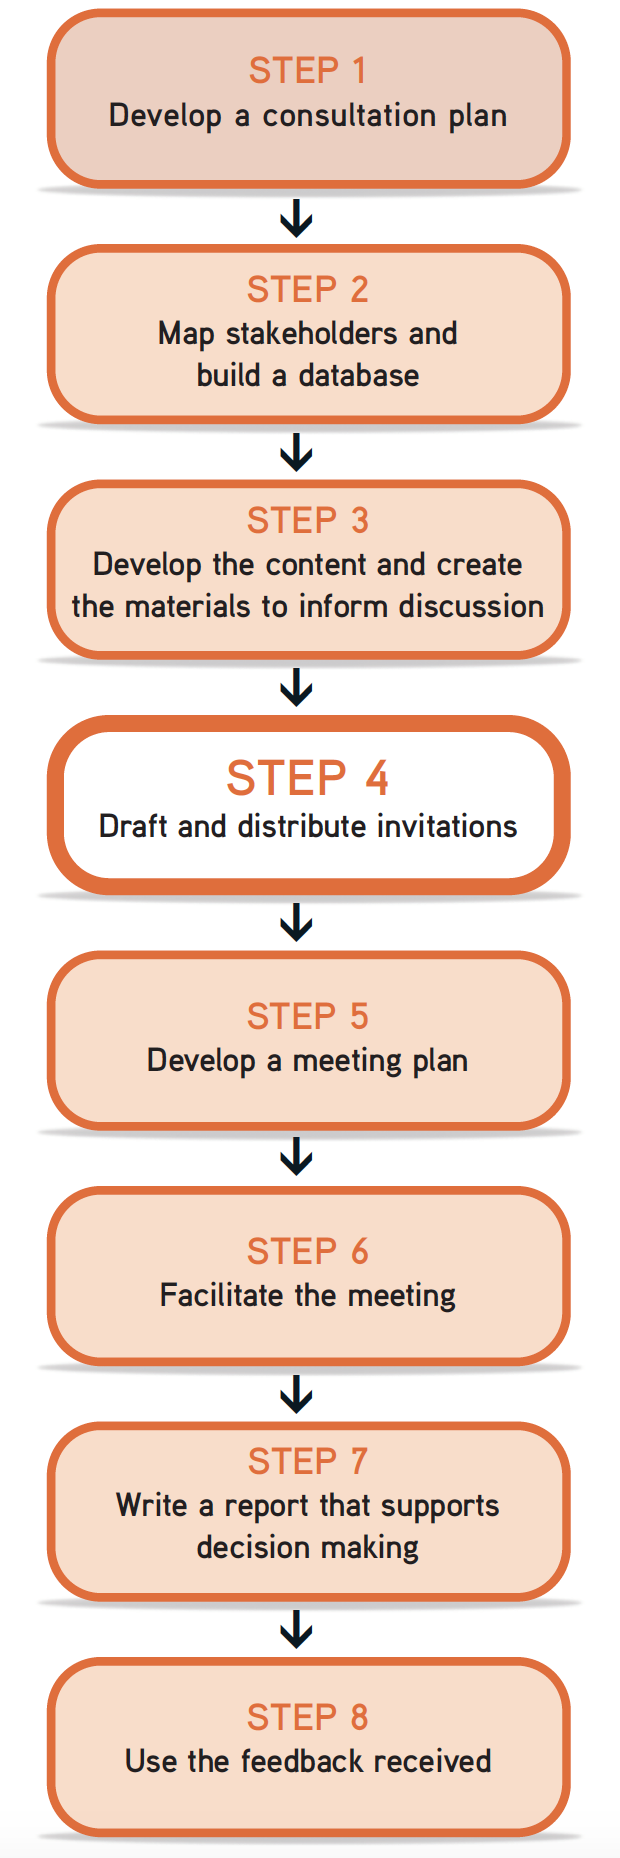 "Picture of steps flow chart, with Step 4 ""draft and distribute invitations"" highlighted"